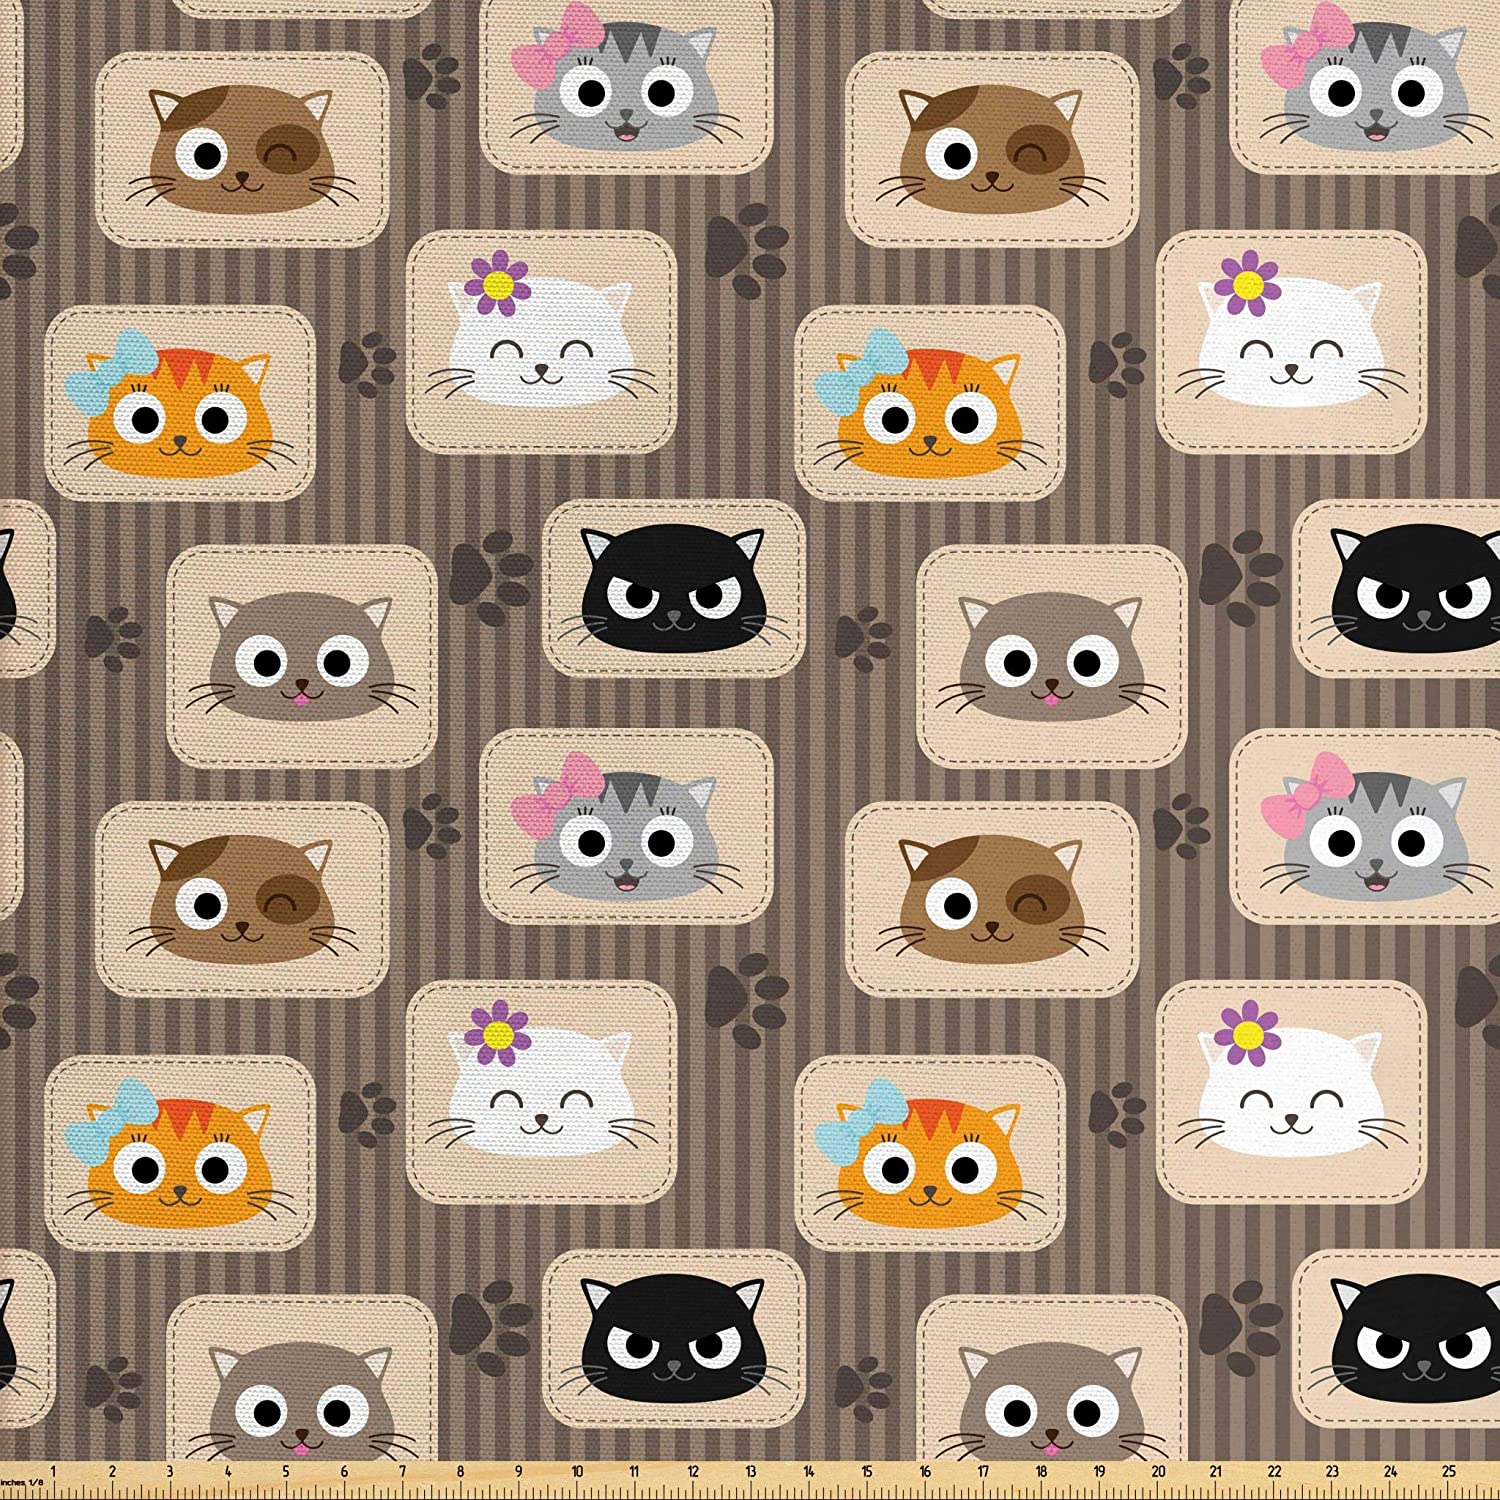 Ambesonne Cat Fabric by The Yard, Patchwork Inspired Pattern Kitty Faces Silly Expressions Footprints Stripes, Decorative Fabric for Upholstery and Home Accents, 3 Yards, Taupe Orange